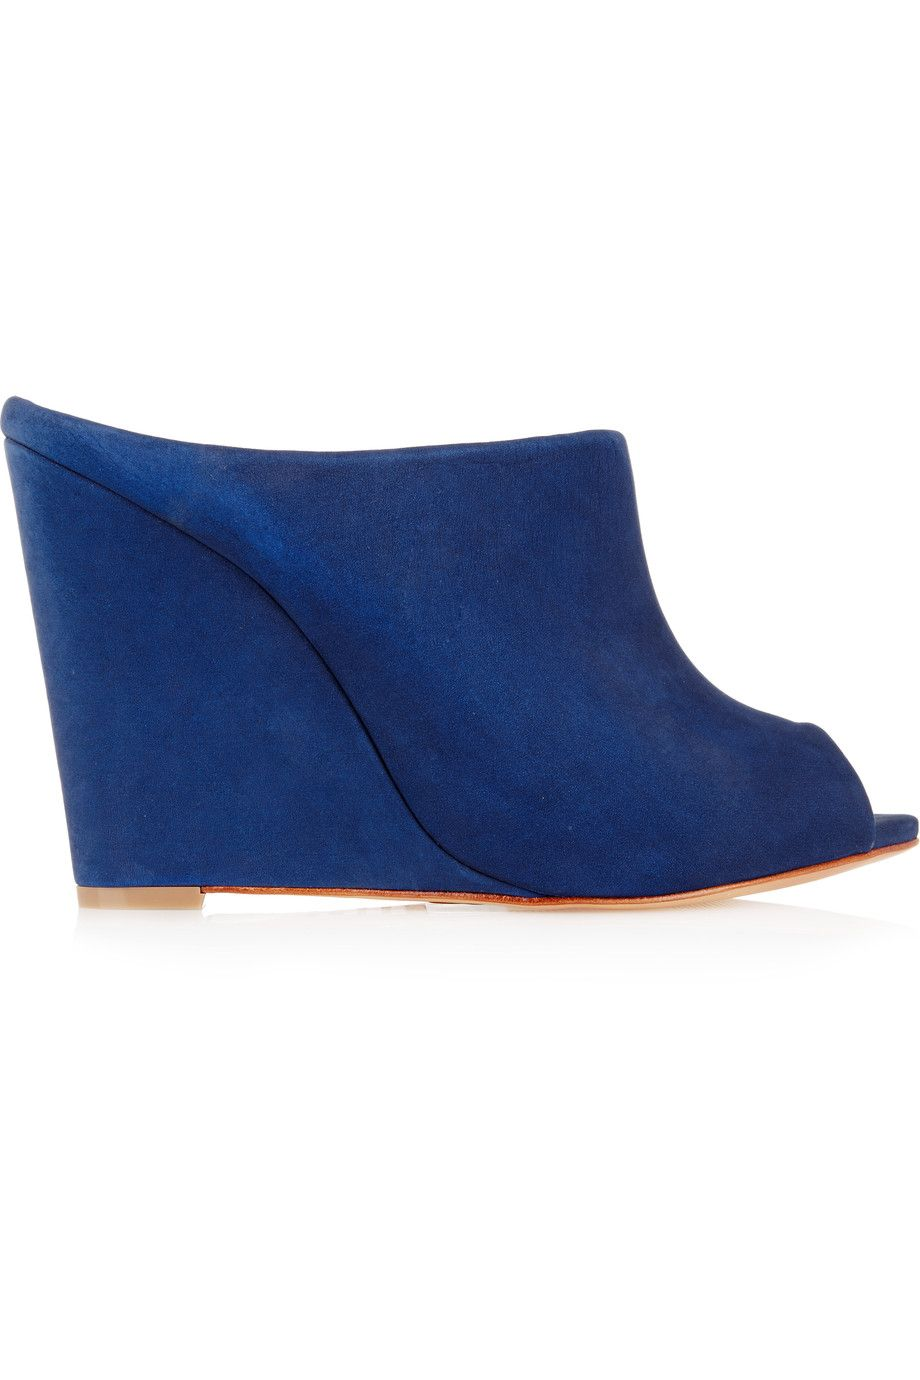 Shop on-sale Schutz Suede wedge mules. Browse other discount designer  Sandals & more on The Most Fashionable Fashion Outlet, THE OUTNET.